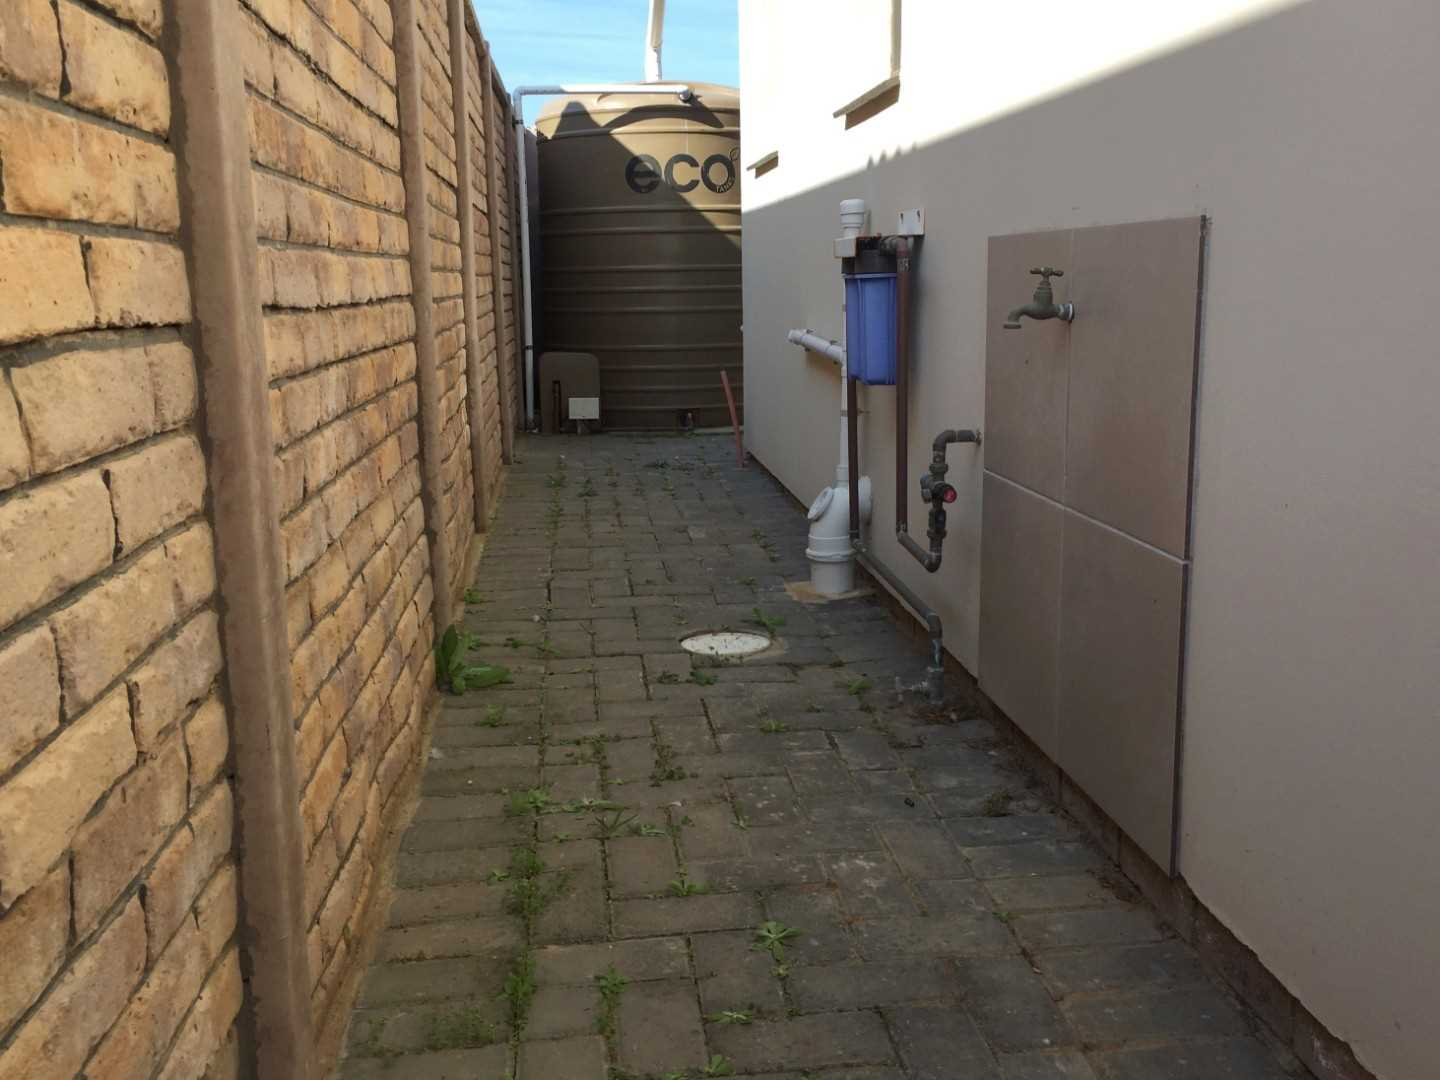 Passageway next to the house